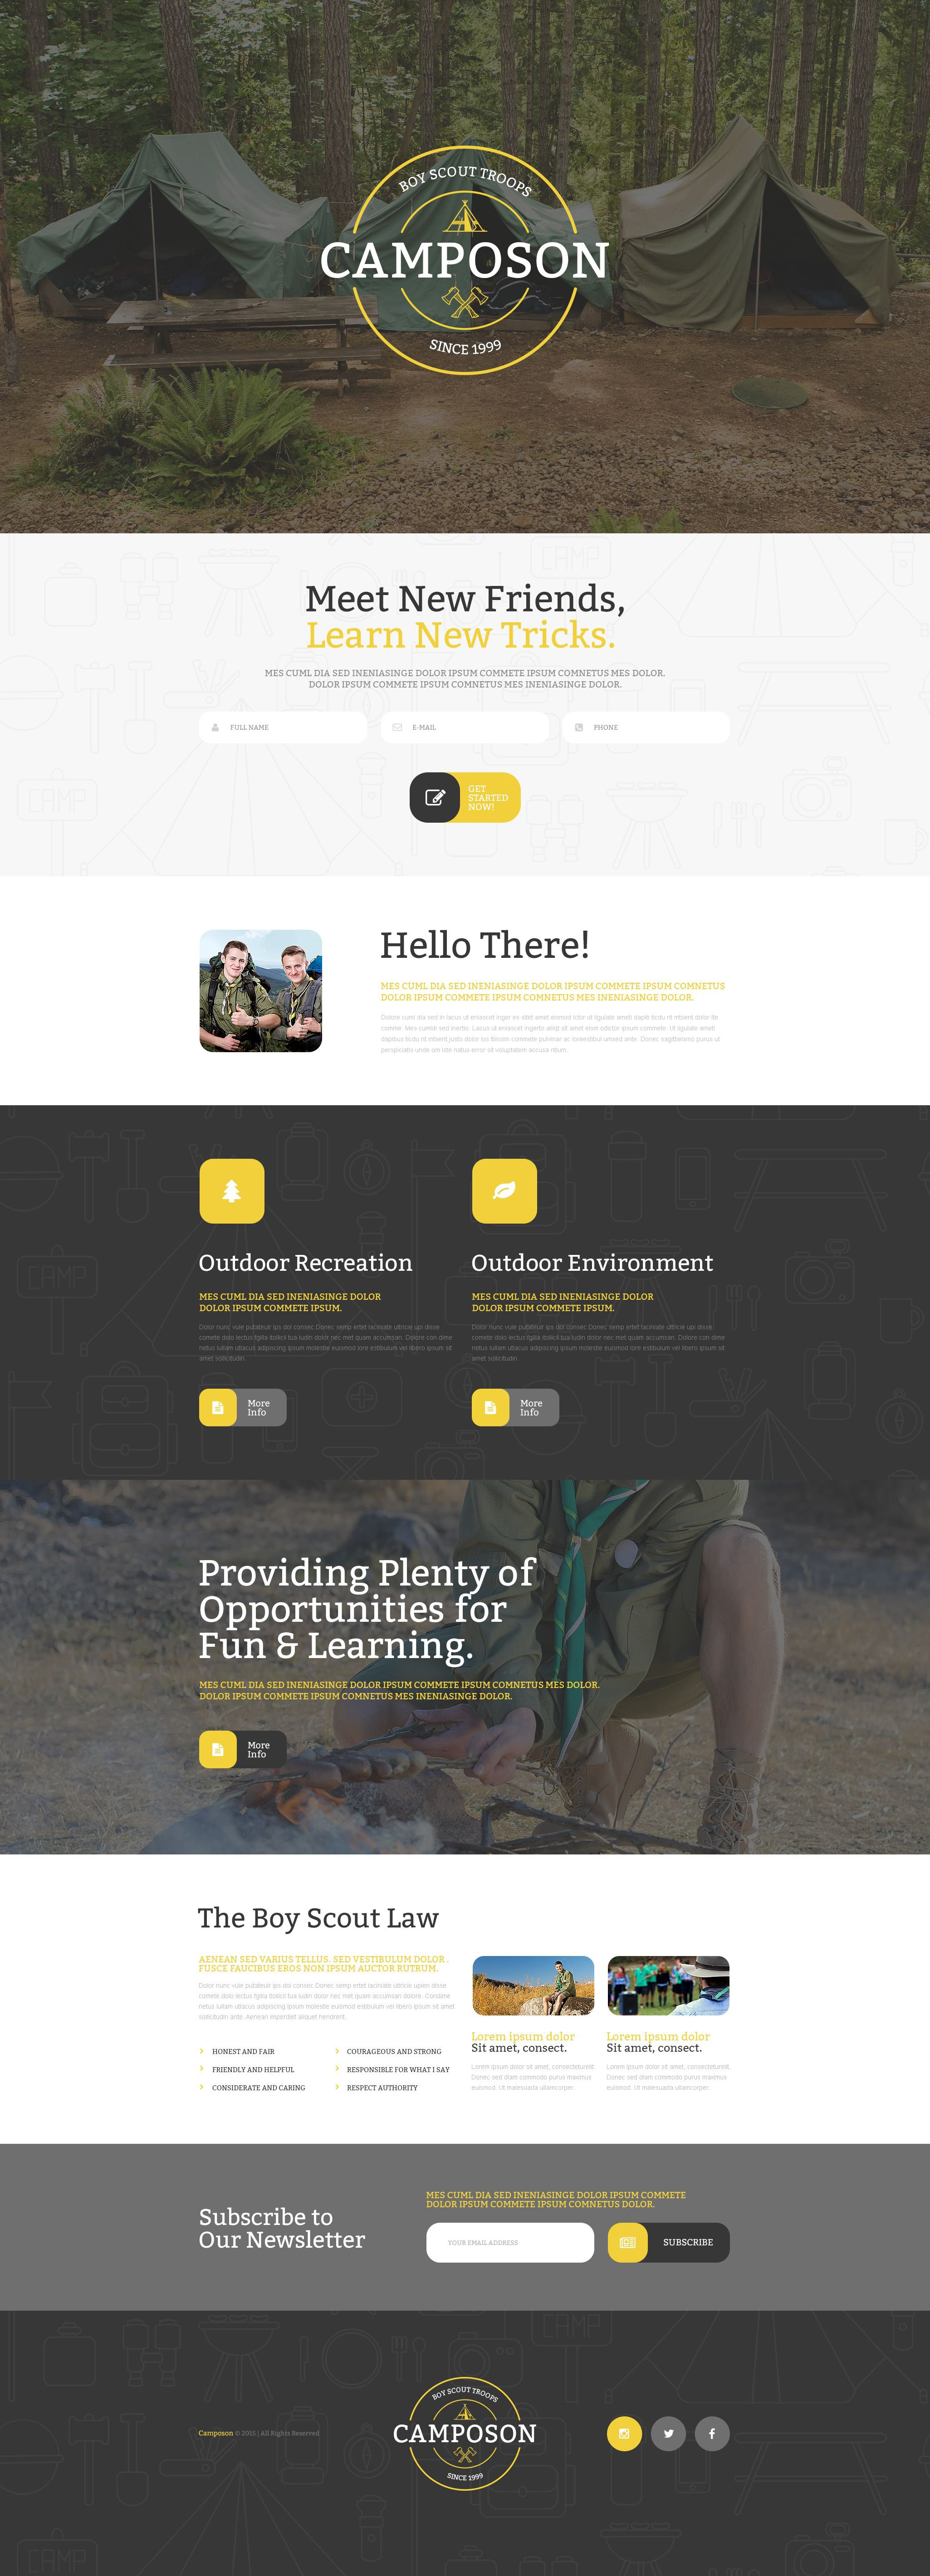 Summer Camp Responsive Landing Page Template #55195